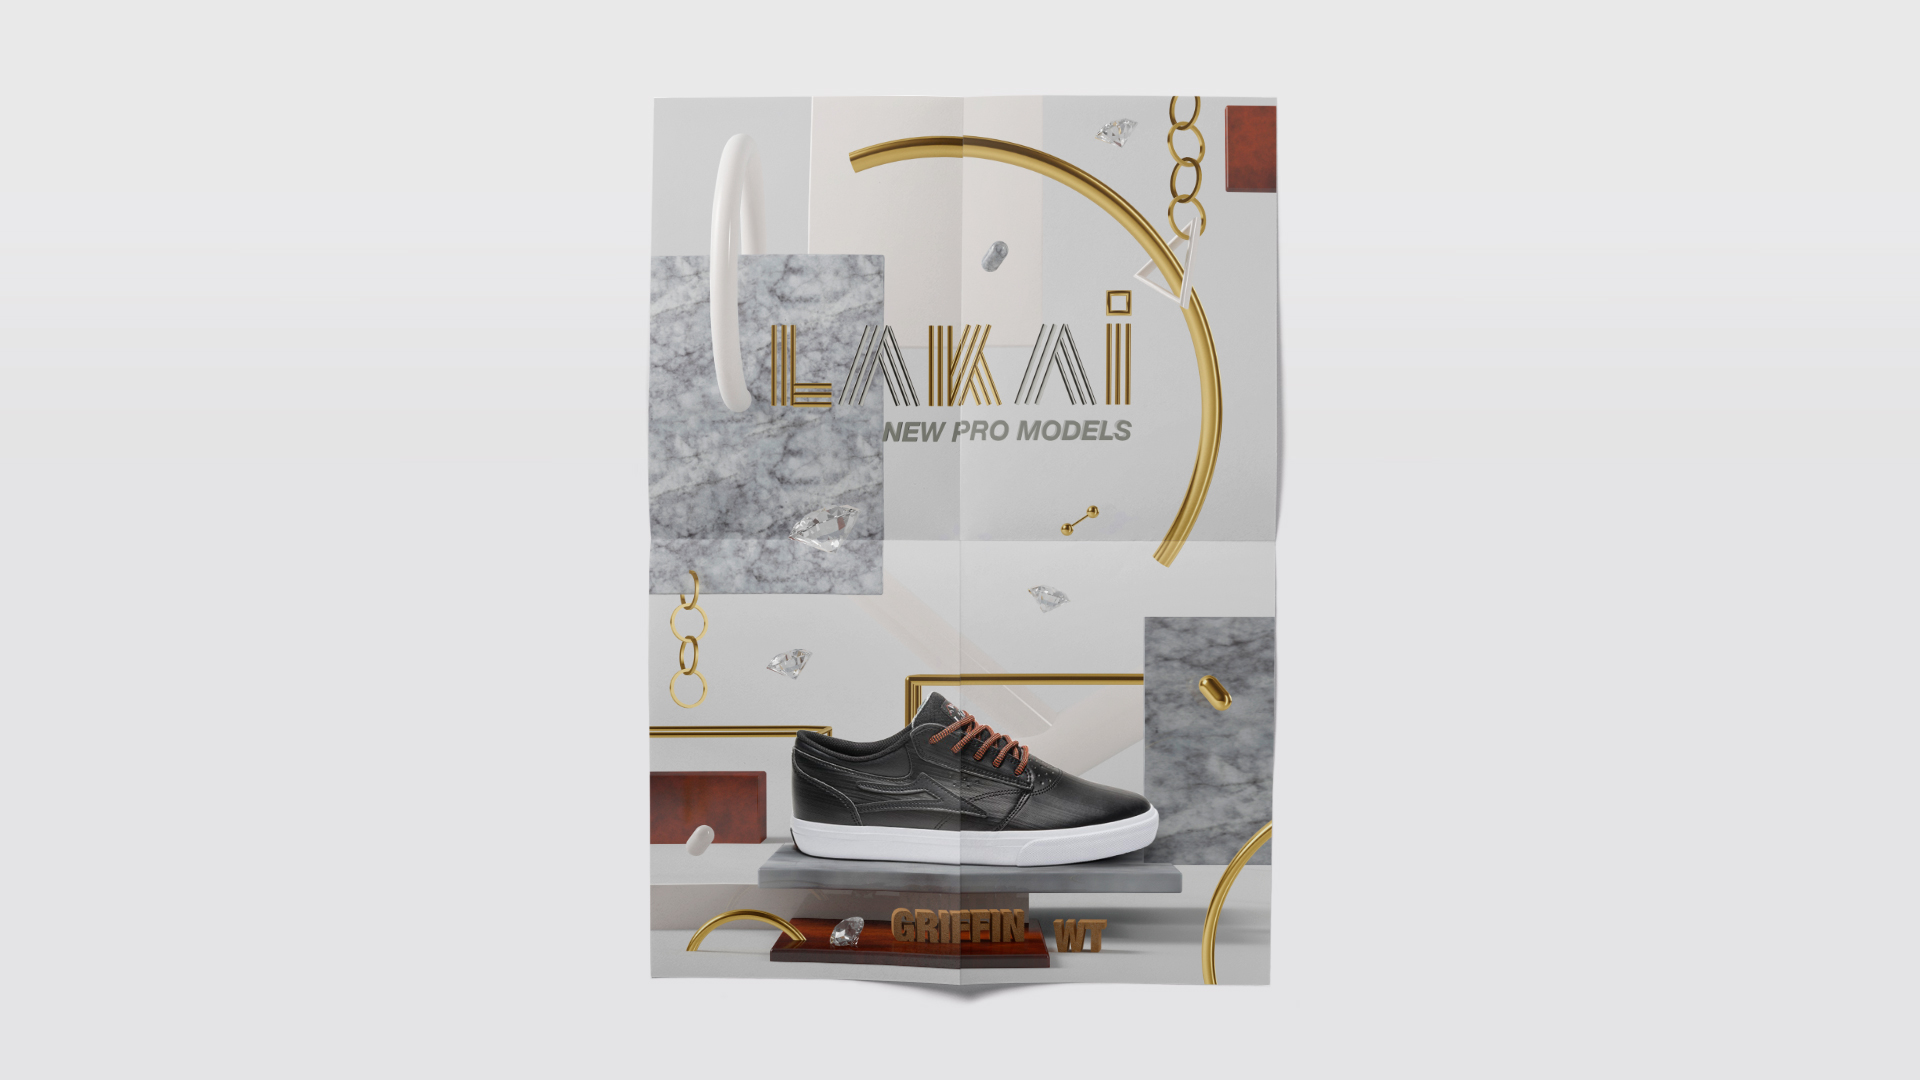 0_advertising_lakai_shoes_artdirection